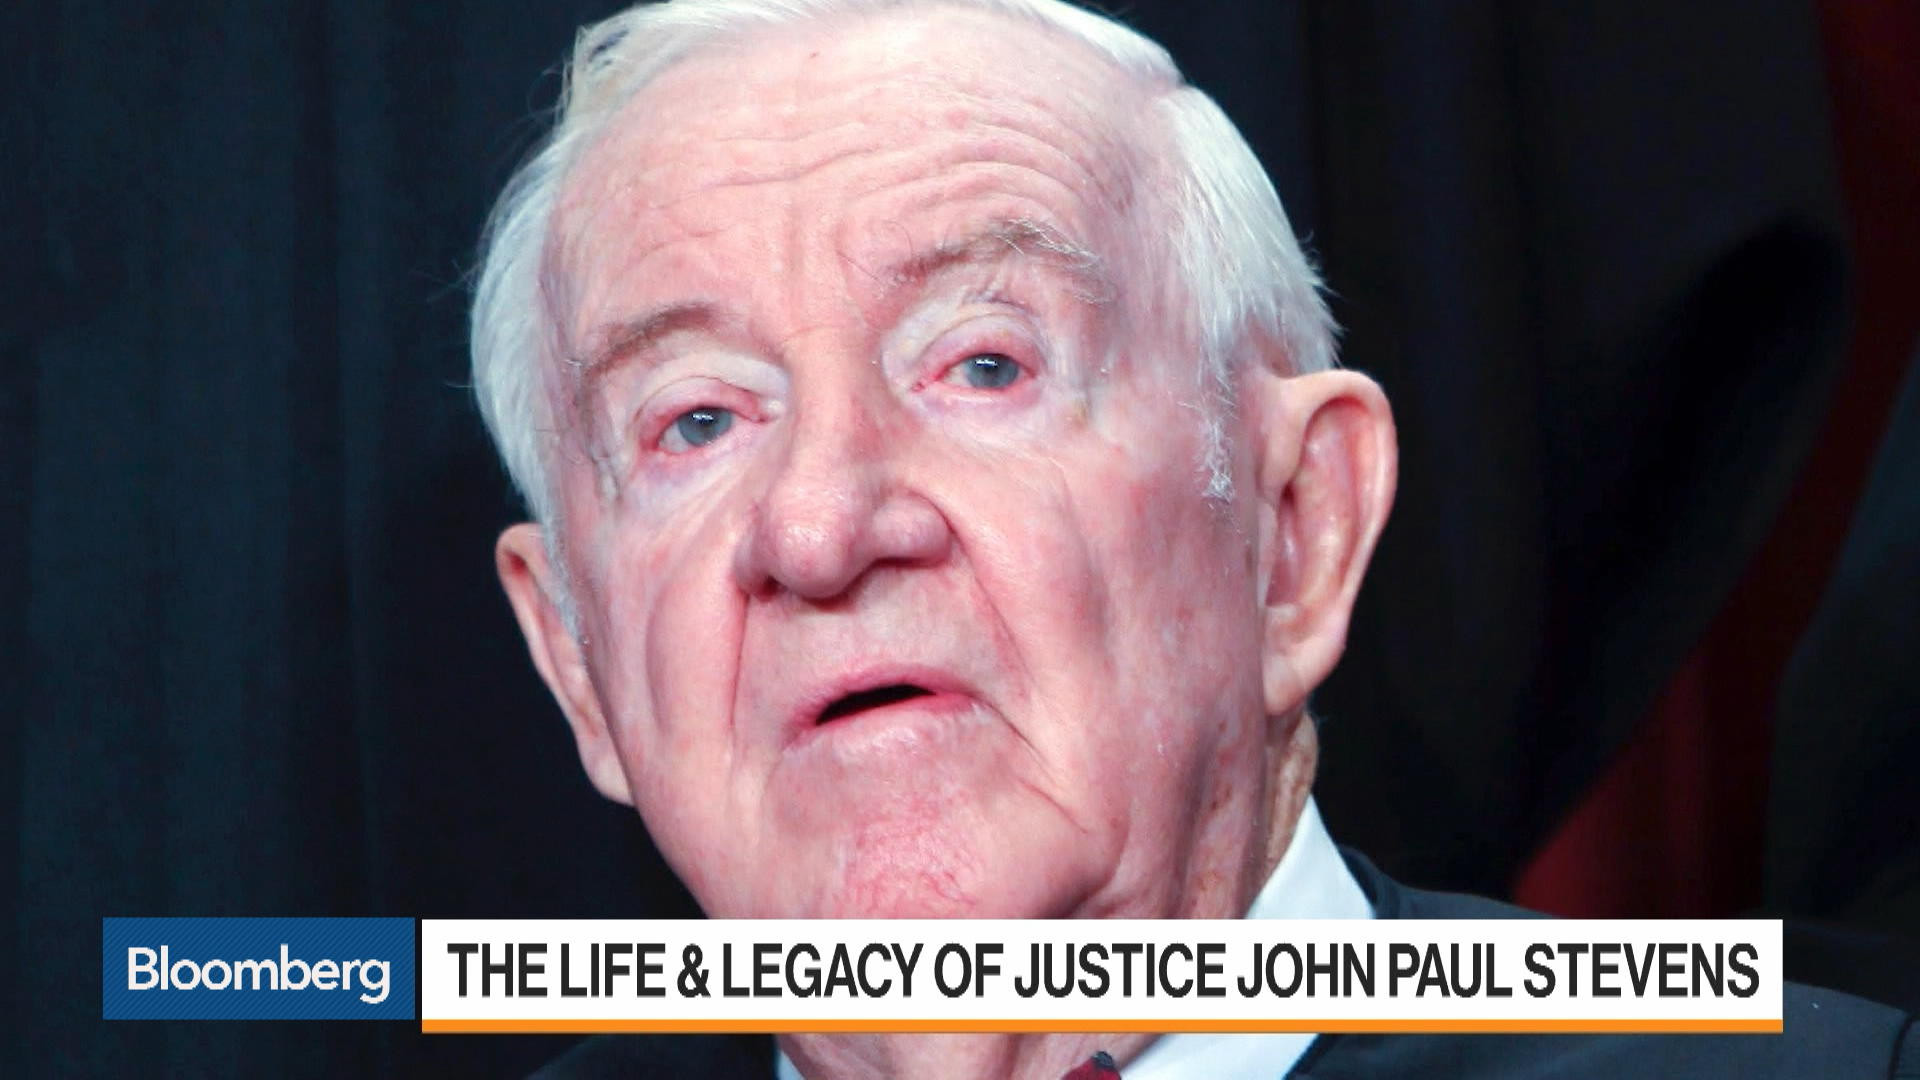 The Life and Legacy of Justice John Paul Stevens